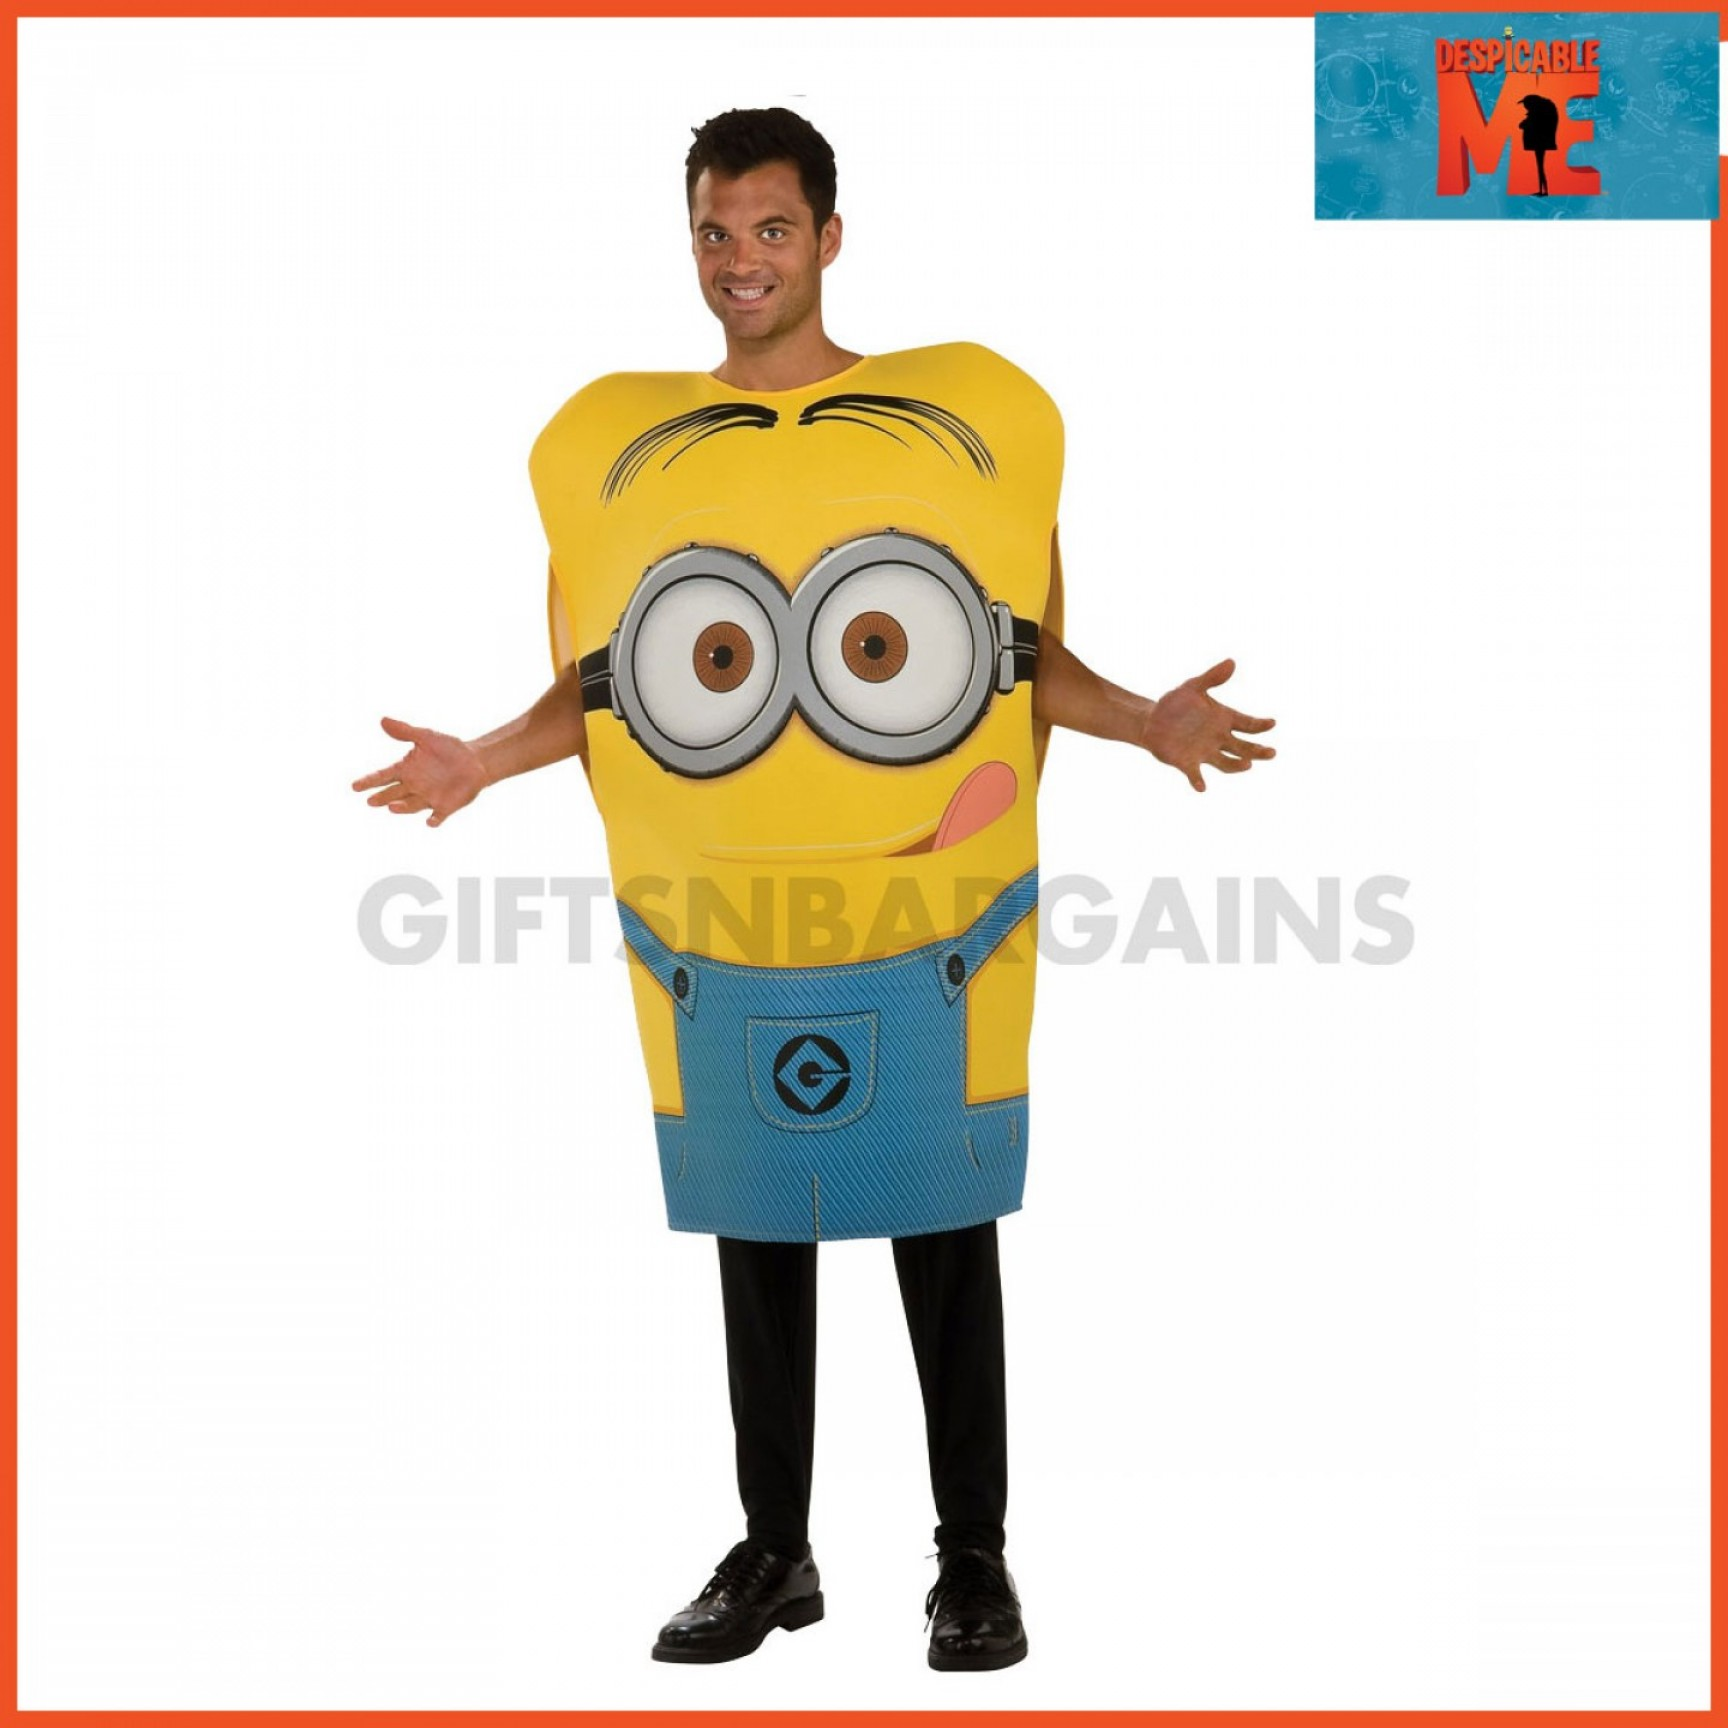 Minion From Despicable Me 2 Vector Image: Despicable Me Minions Dave Costume For Infants Toddlers Or Adults